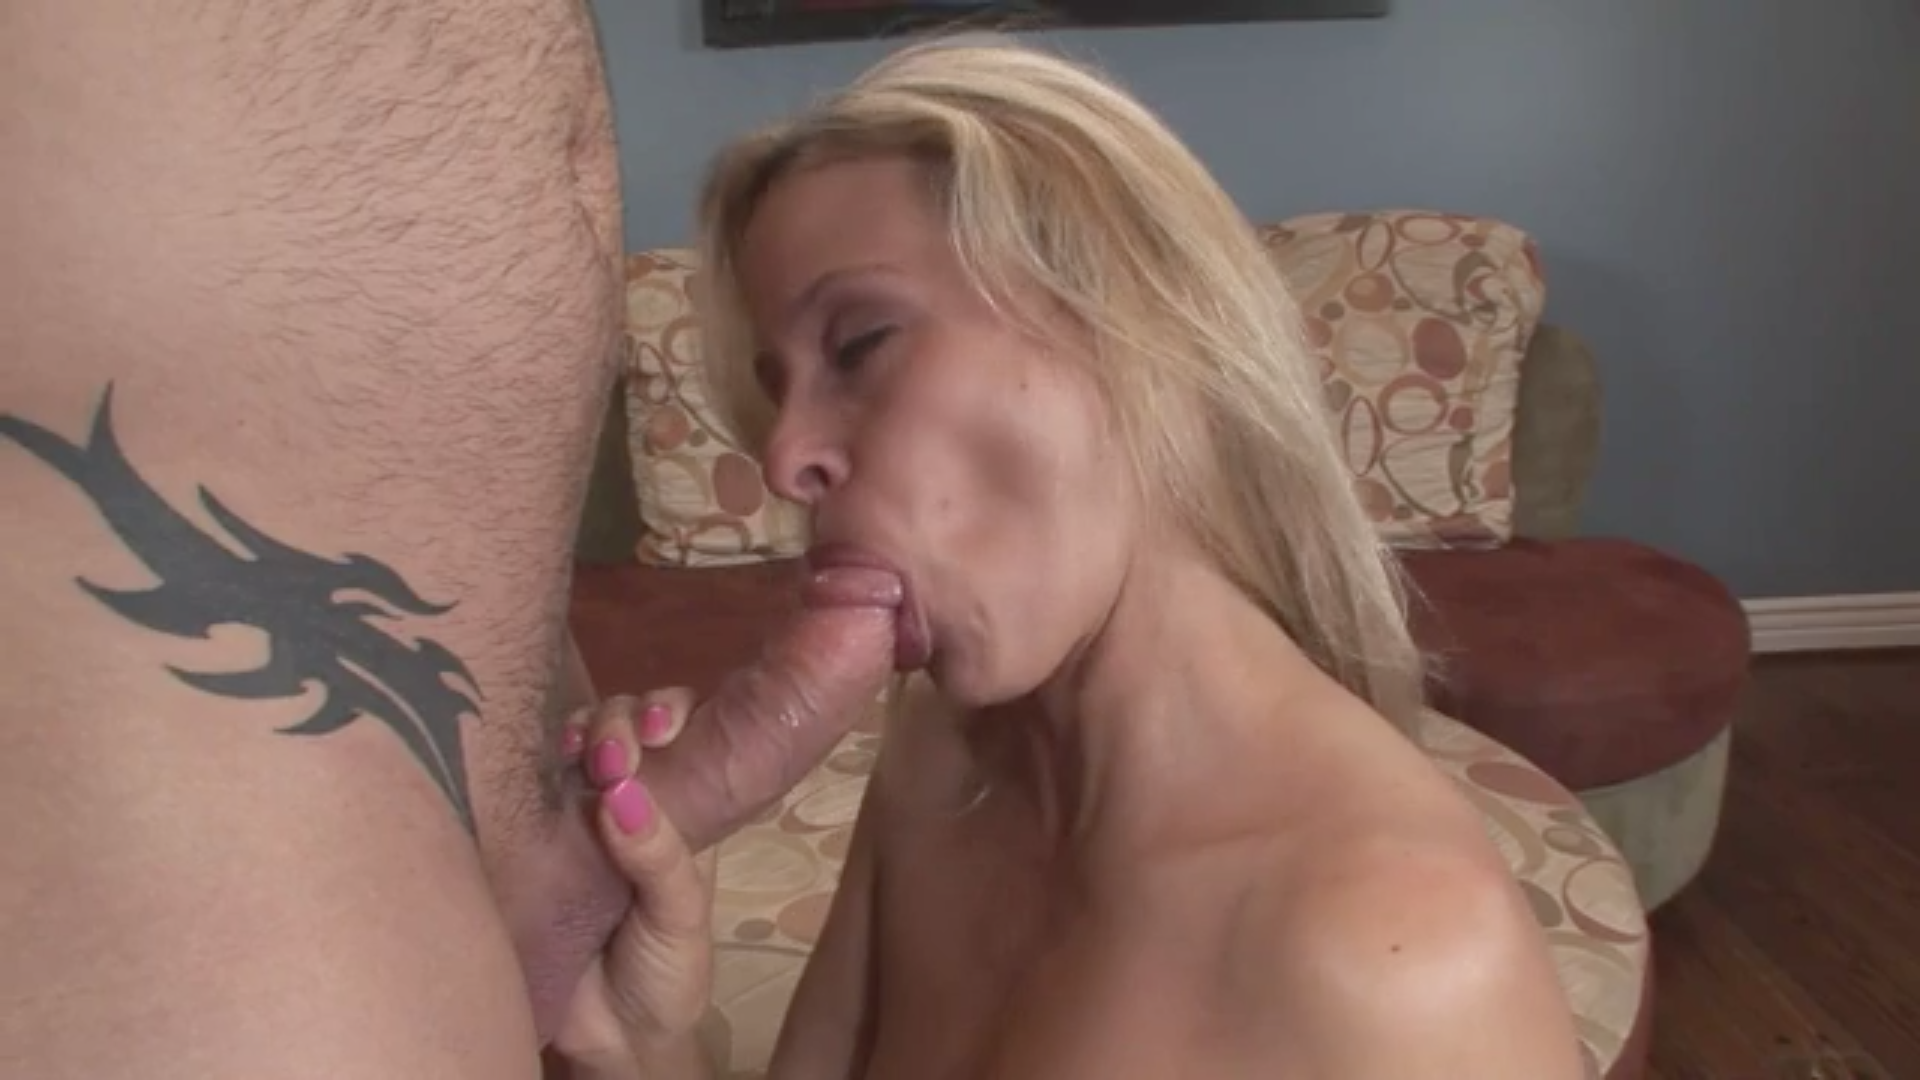 I rode his cock like a pro